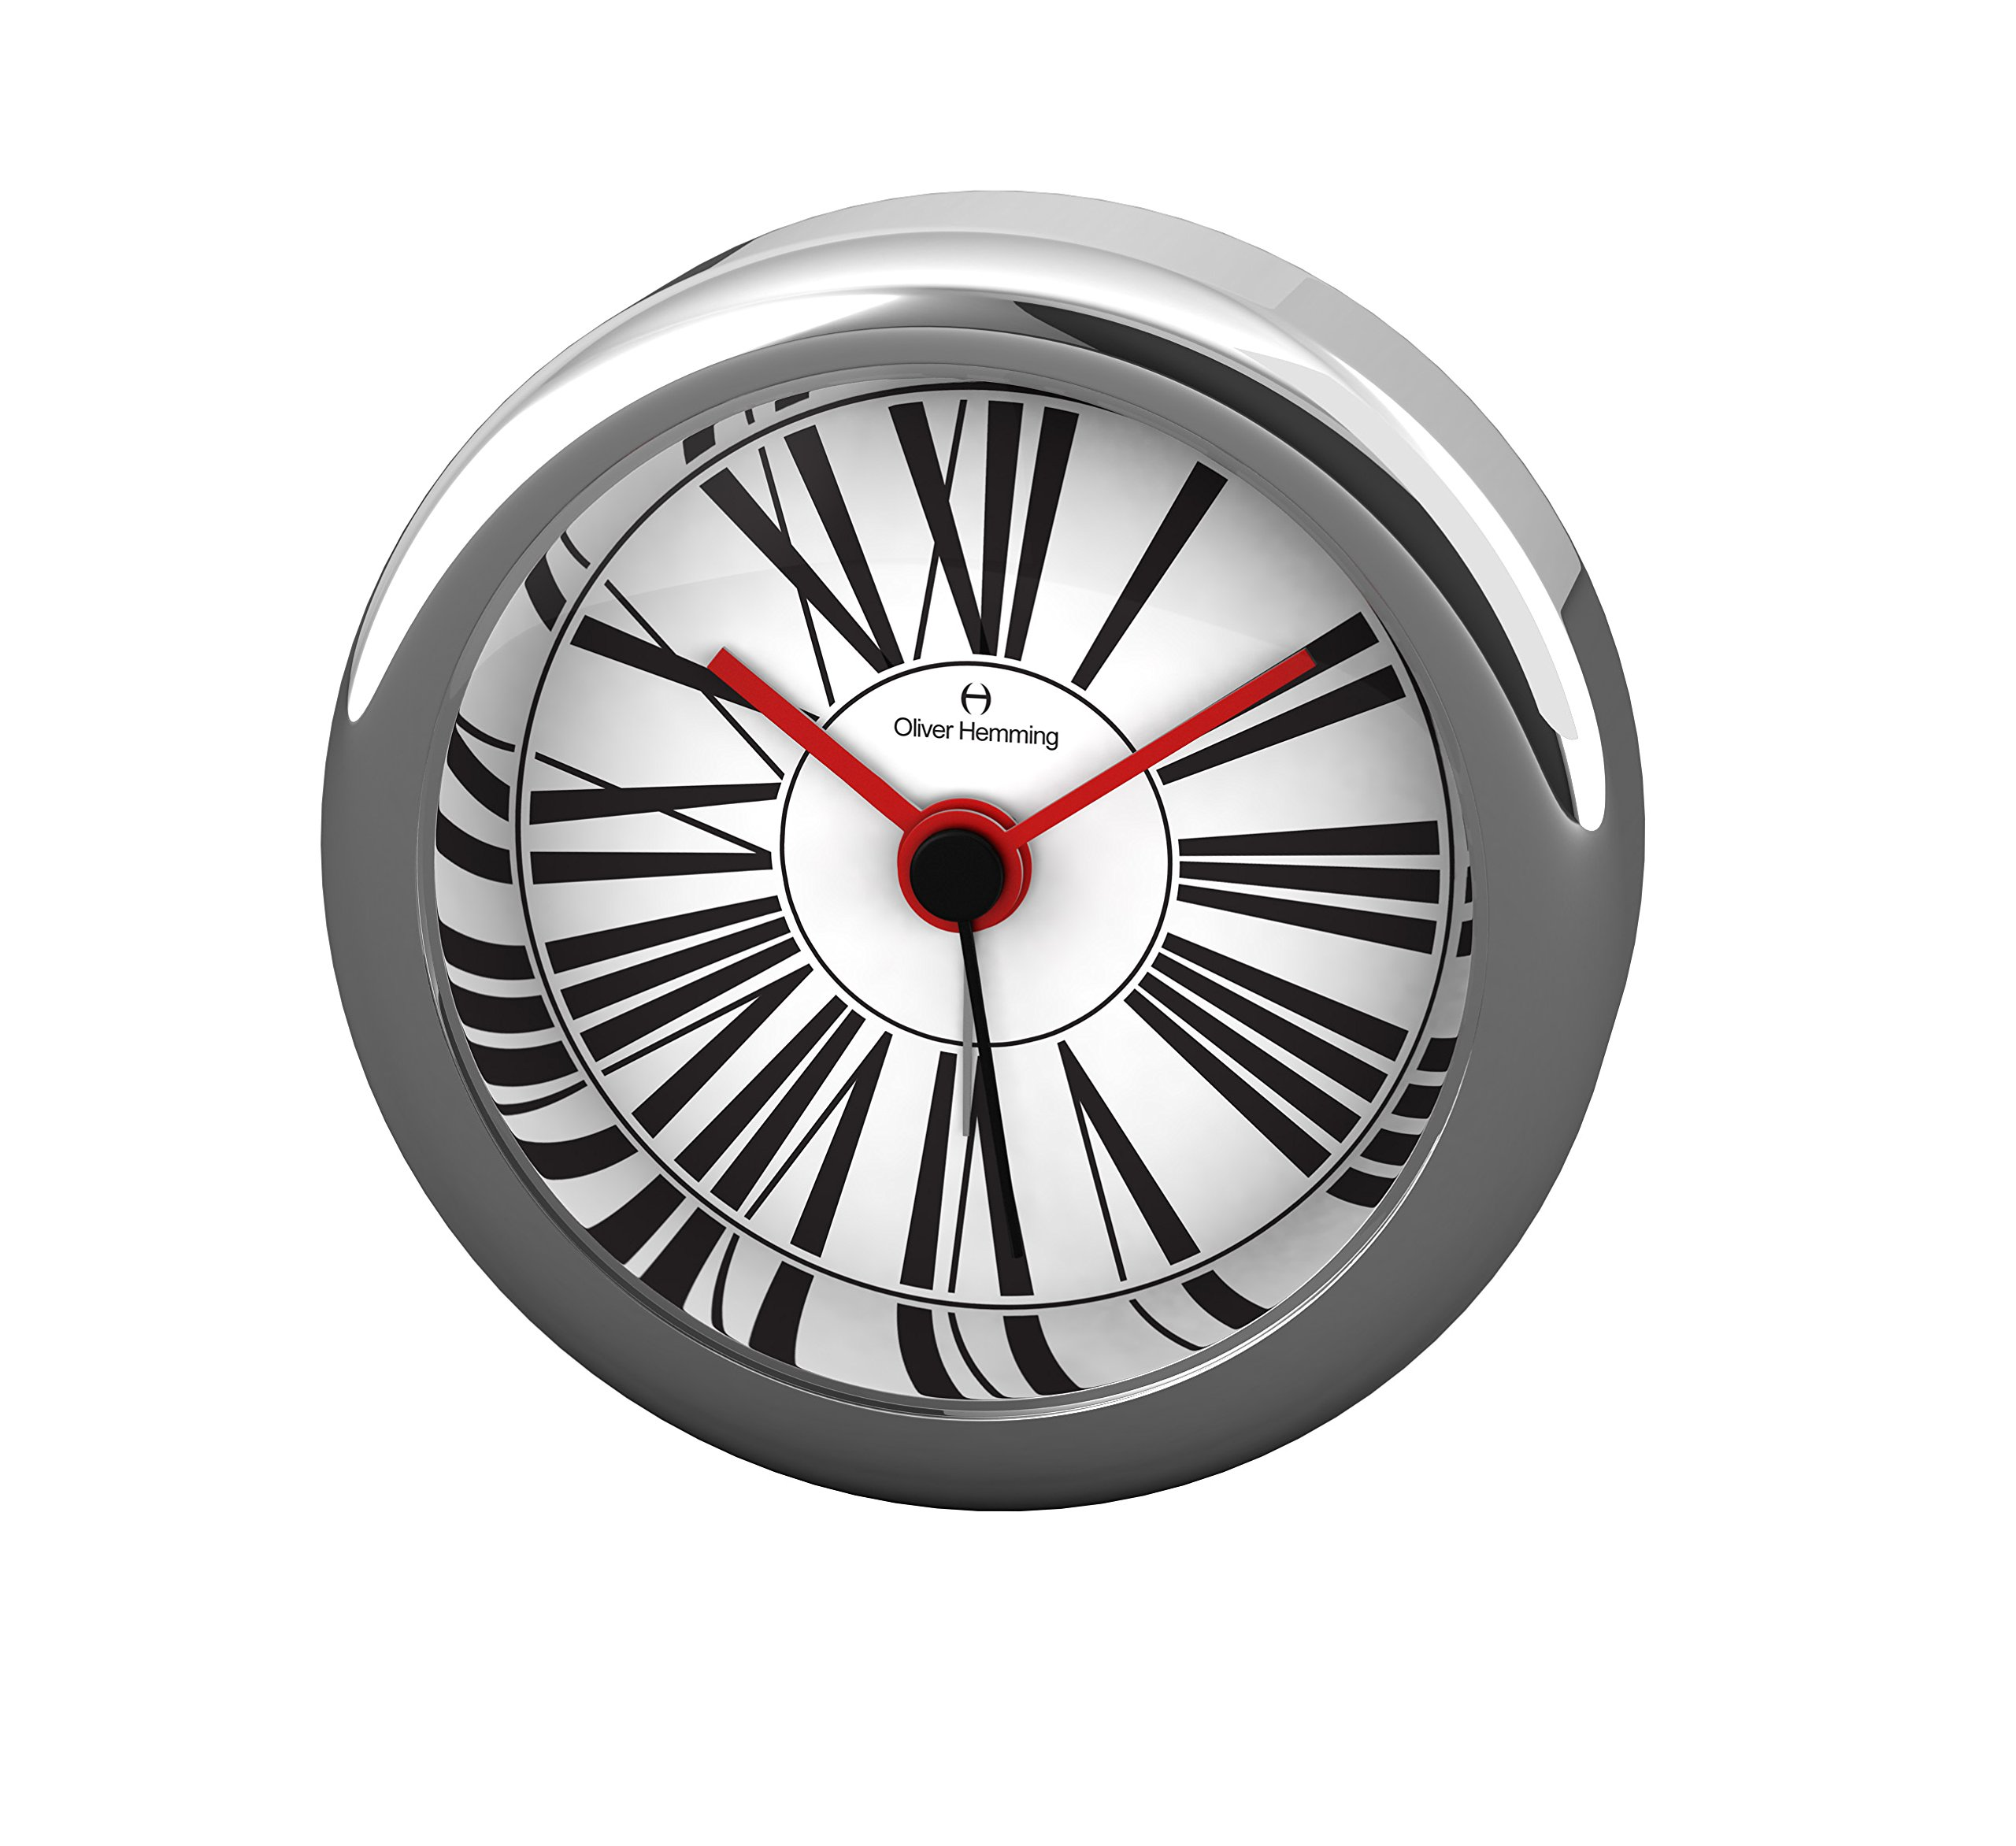 Oliver Hemming Chrome Steel Alarm Clock with Roman Numeral Dial